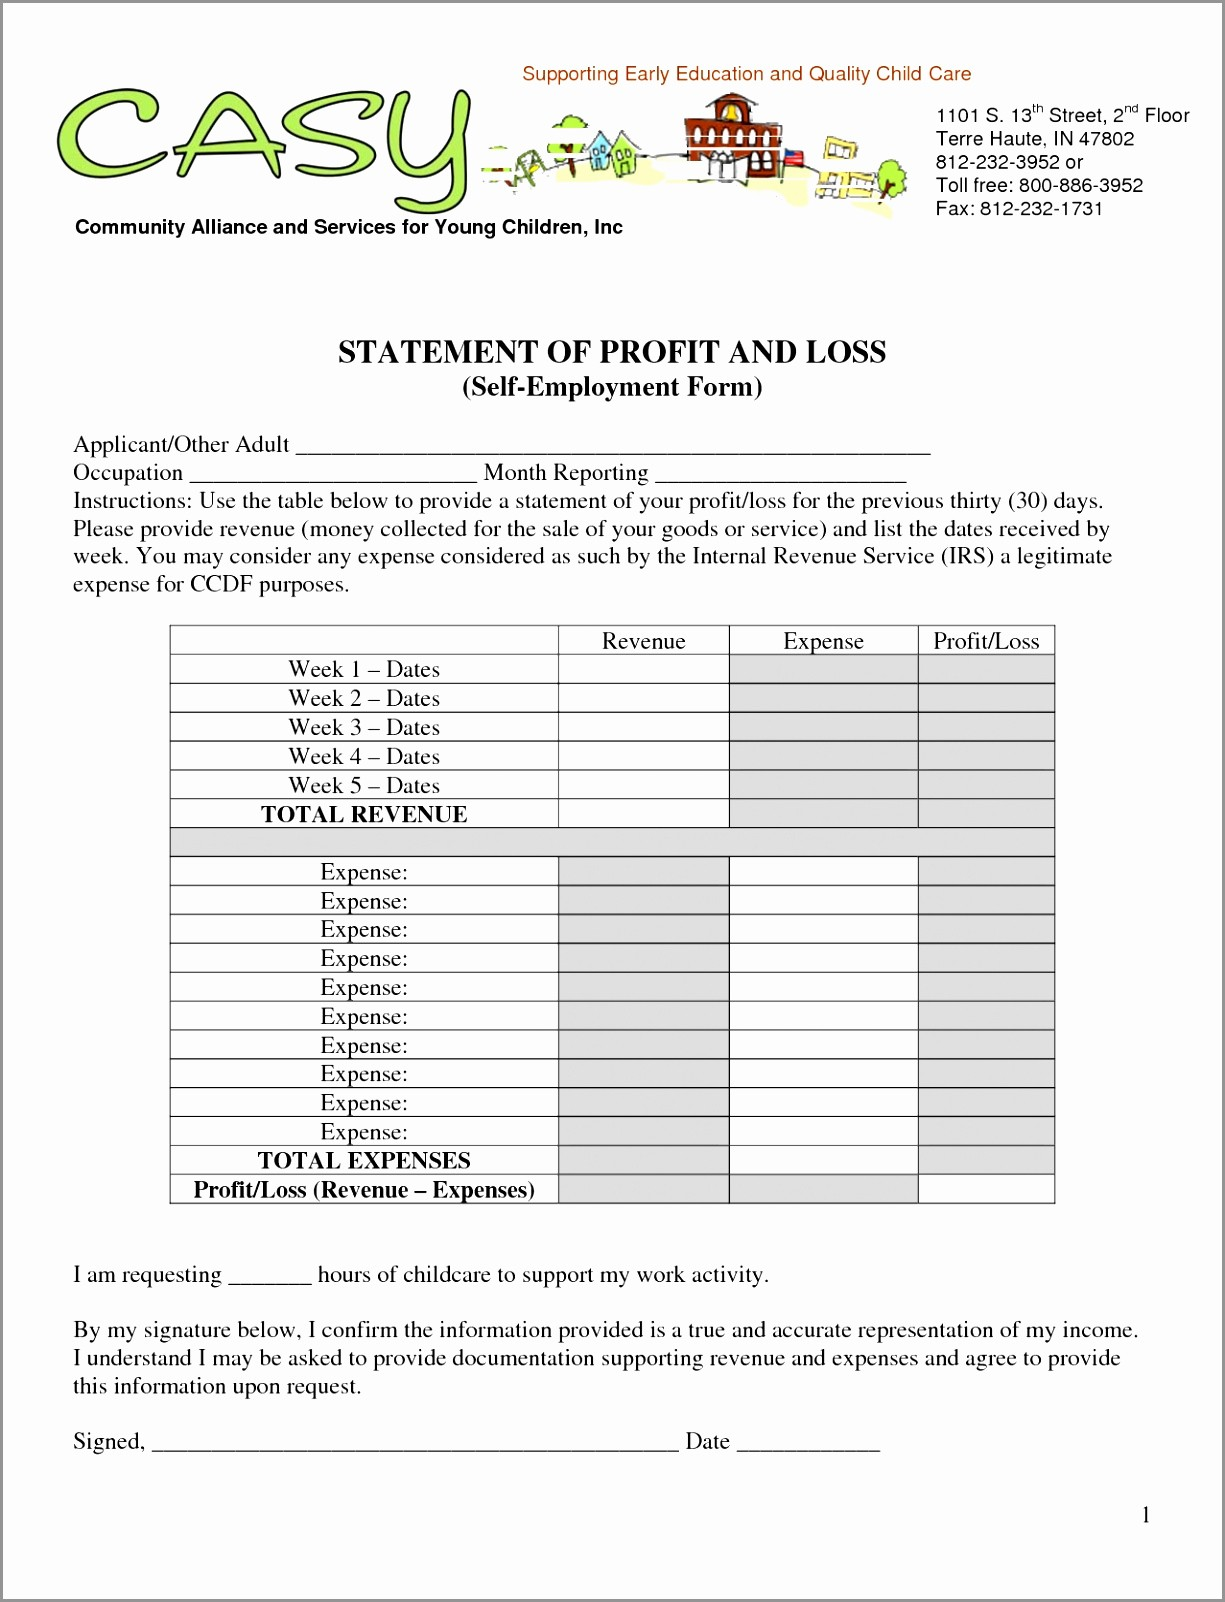 Profit Loss Statement Template Excel Inspirational 5 Sample Profit and Loss Statement Excel Template Ptbre